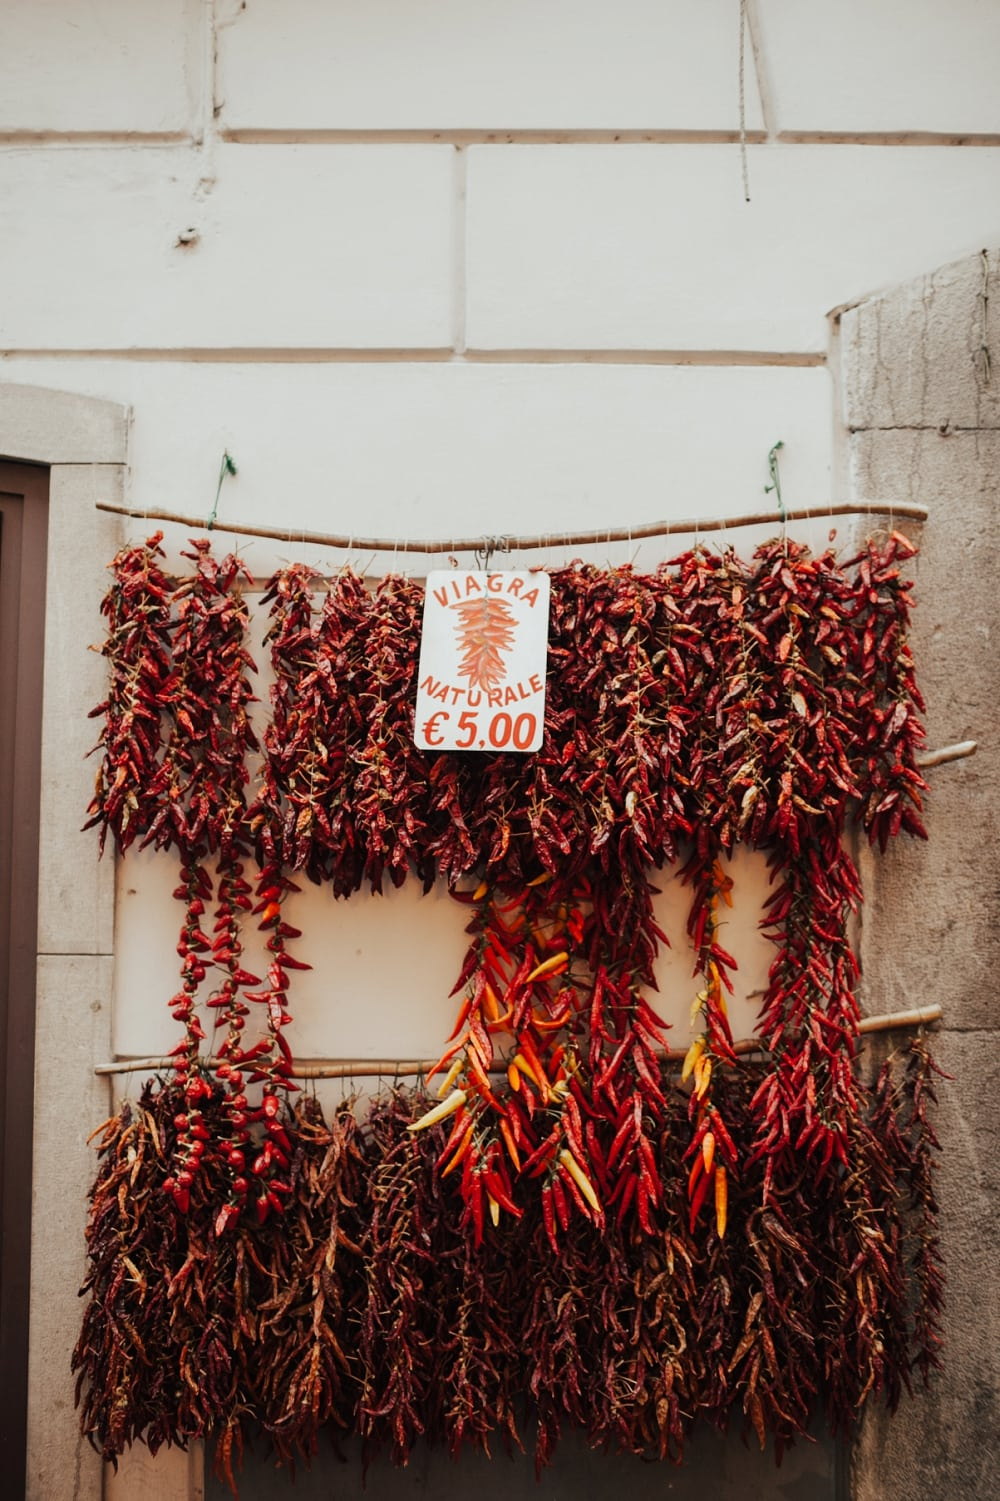 red chilis in amalfi